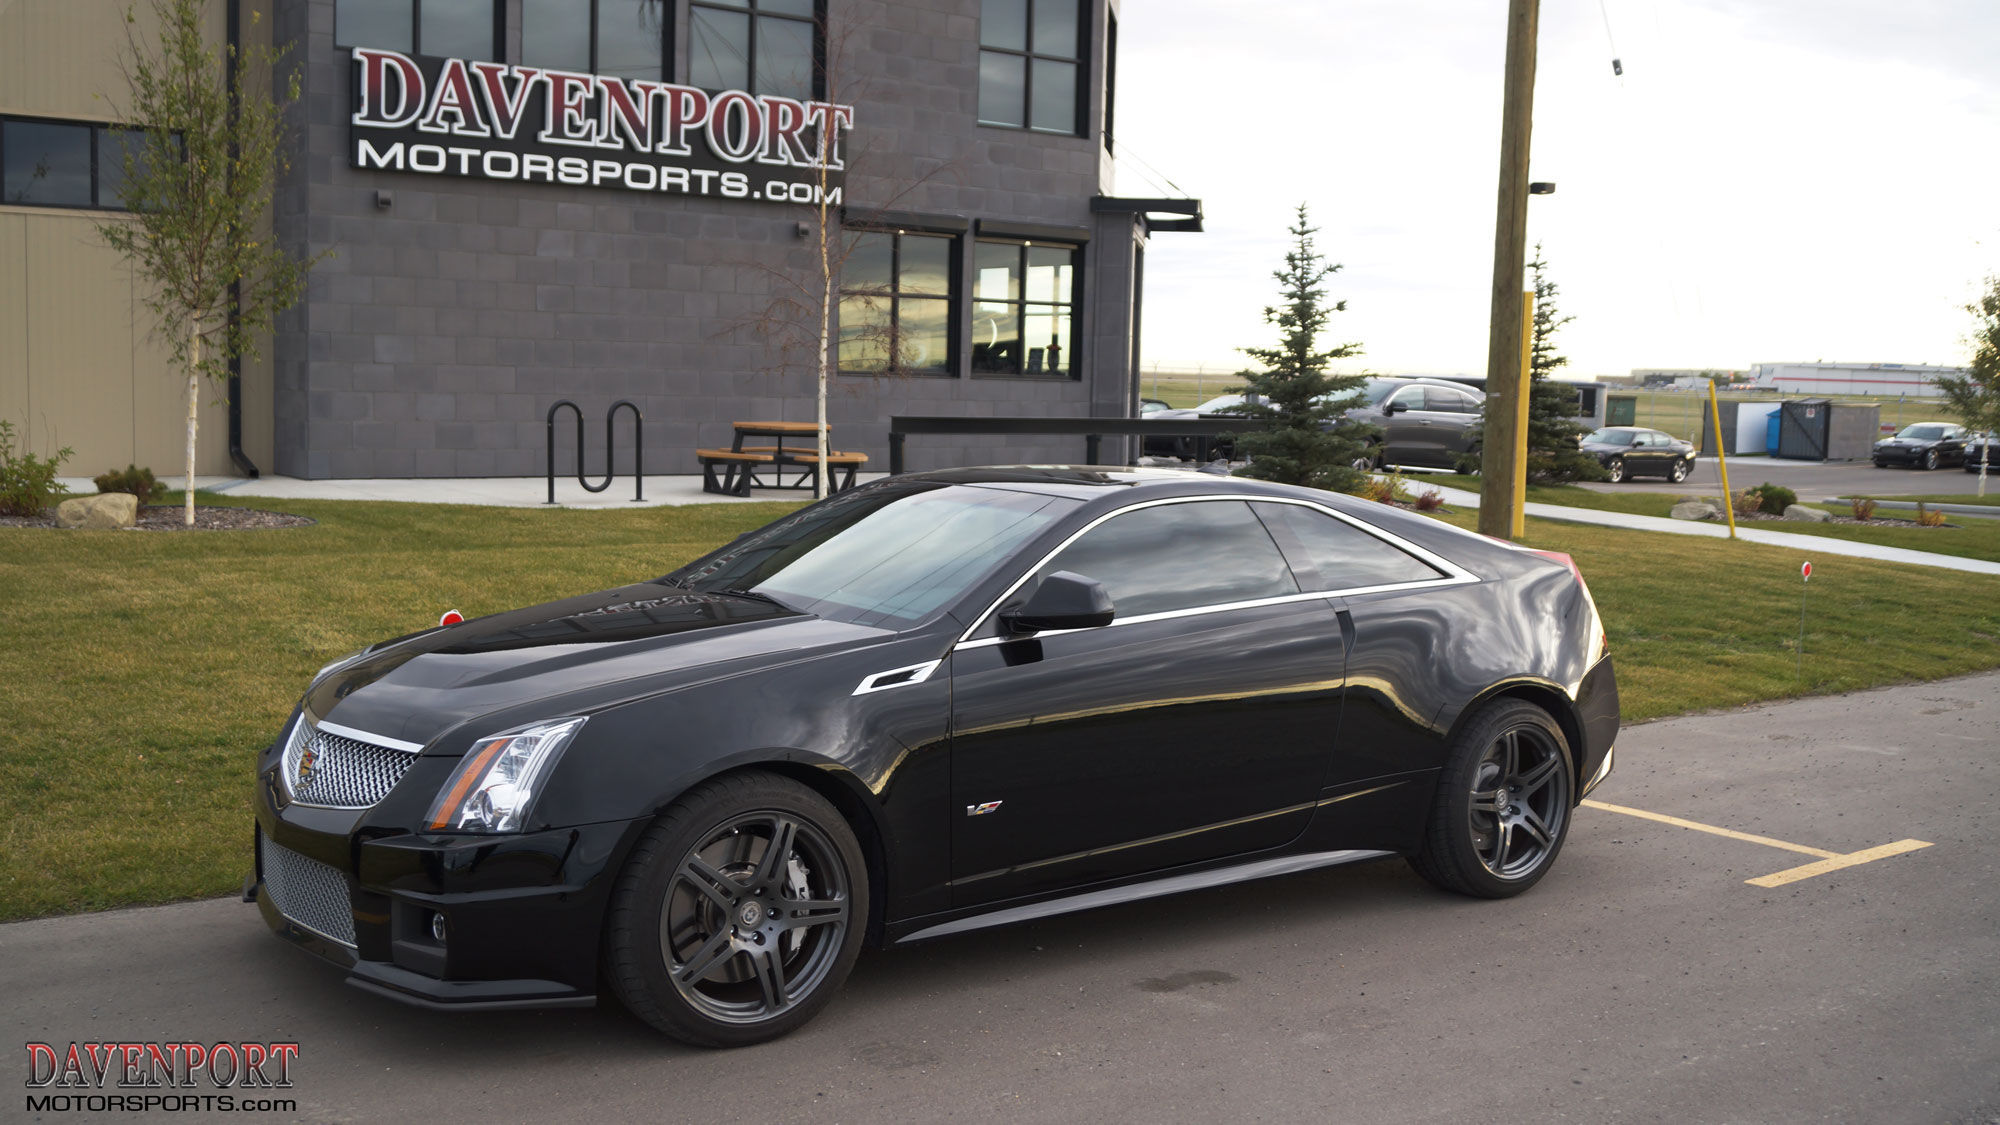 2011 Cadillac CTS-V Coupe | Stage 5 Cadillac CTS-V Coupe